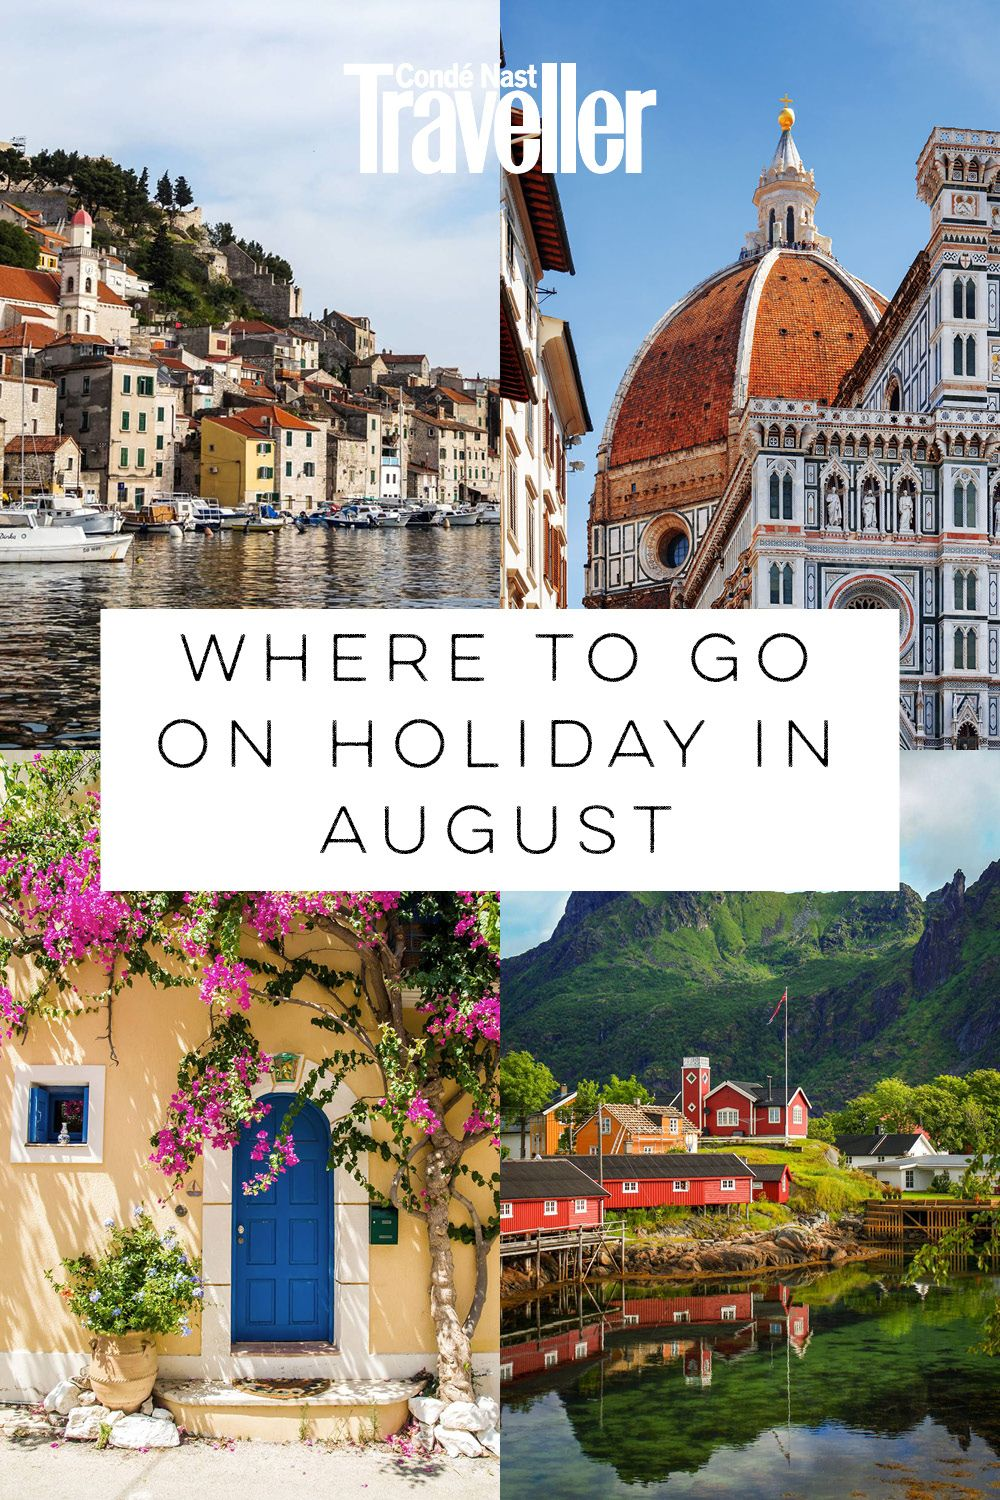 Where To Go On Holiday In August: 20 Top Destinations